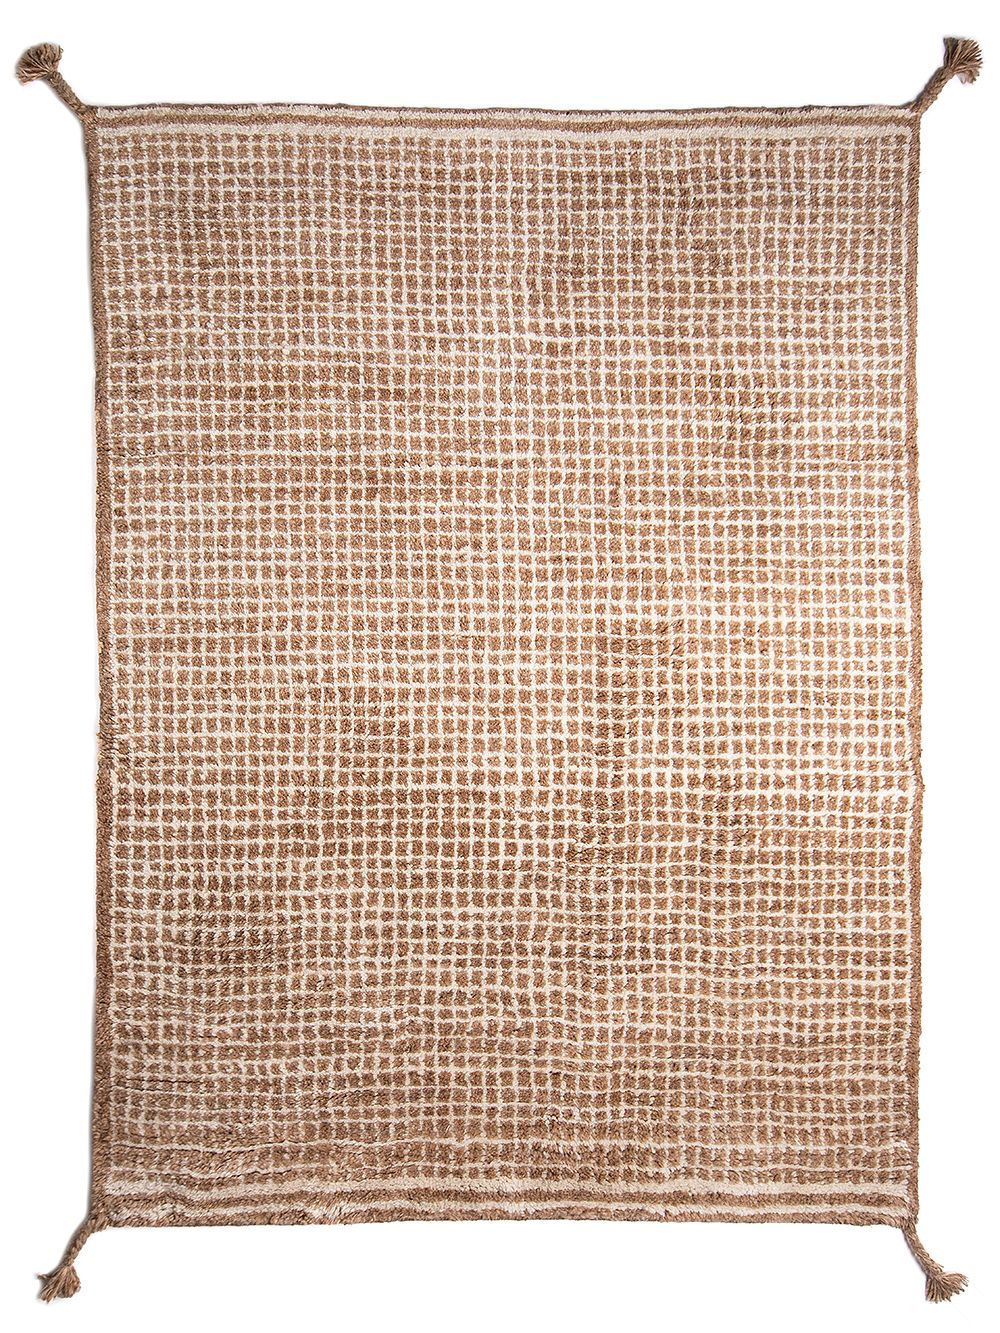 Woodnotes Grid rug, white and camel